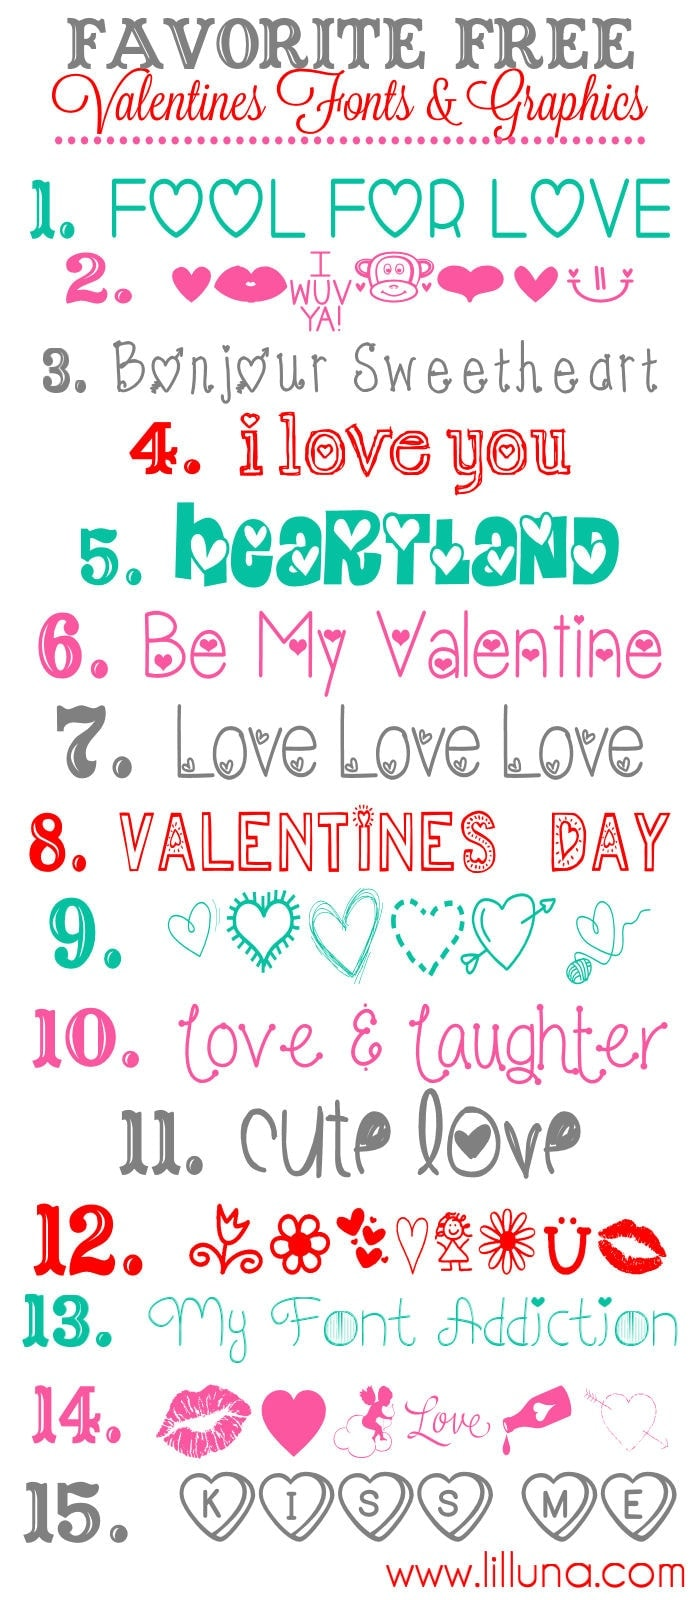 Favorite Free Valentine's Fonts and Graphics to download and use { lilluna.com }